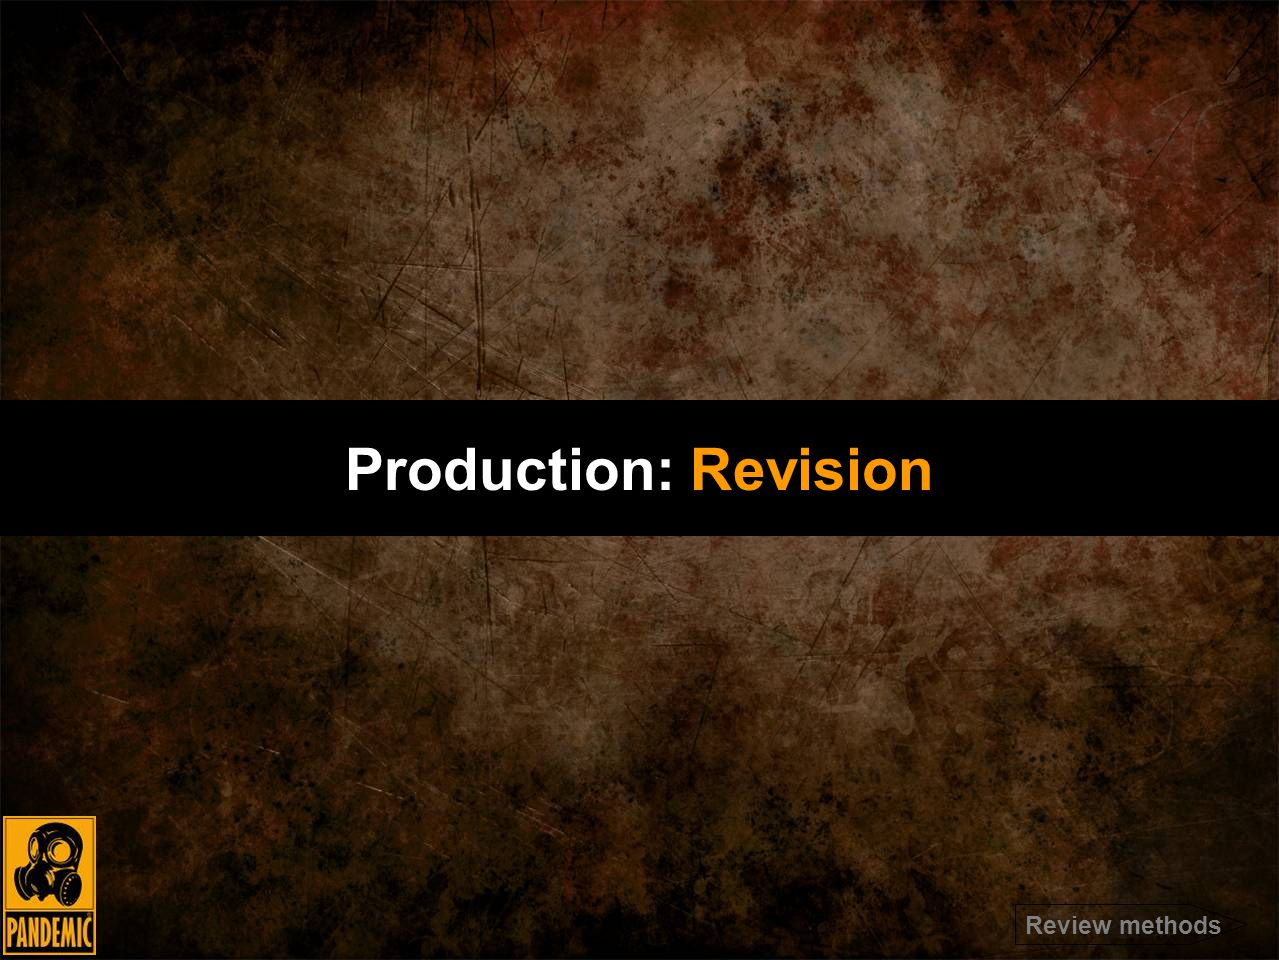 Production: Revision Review methods